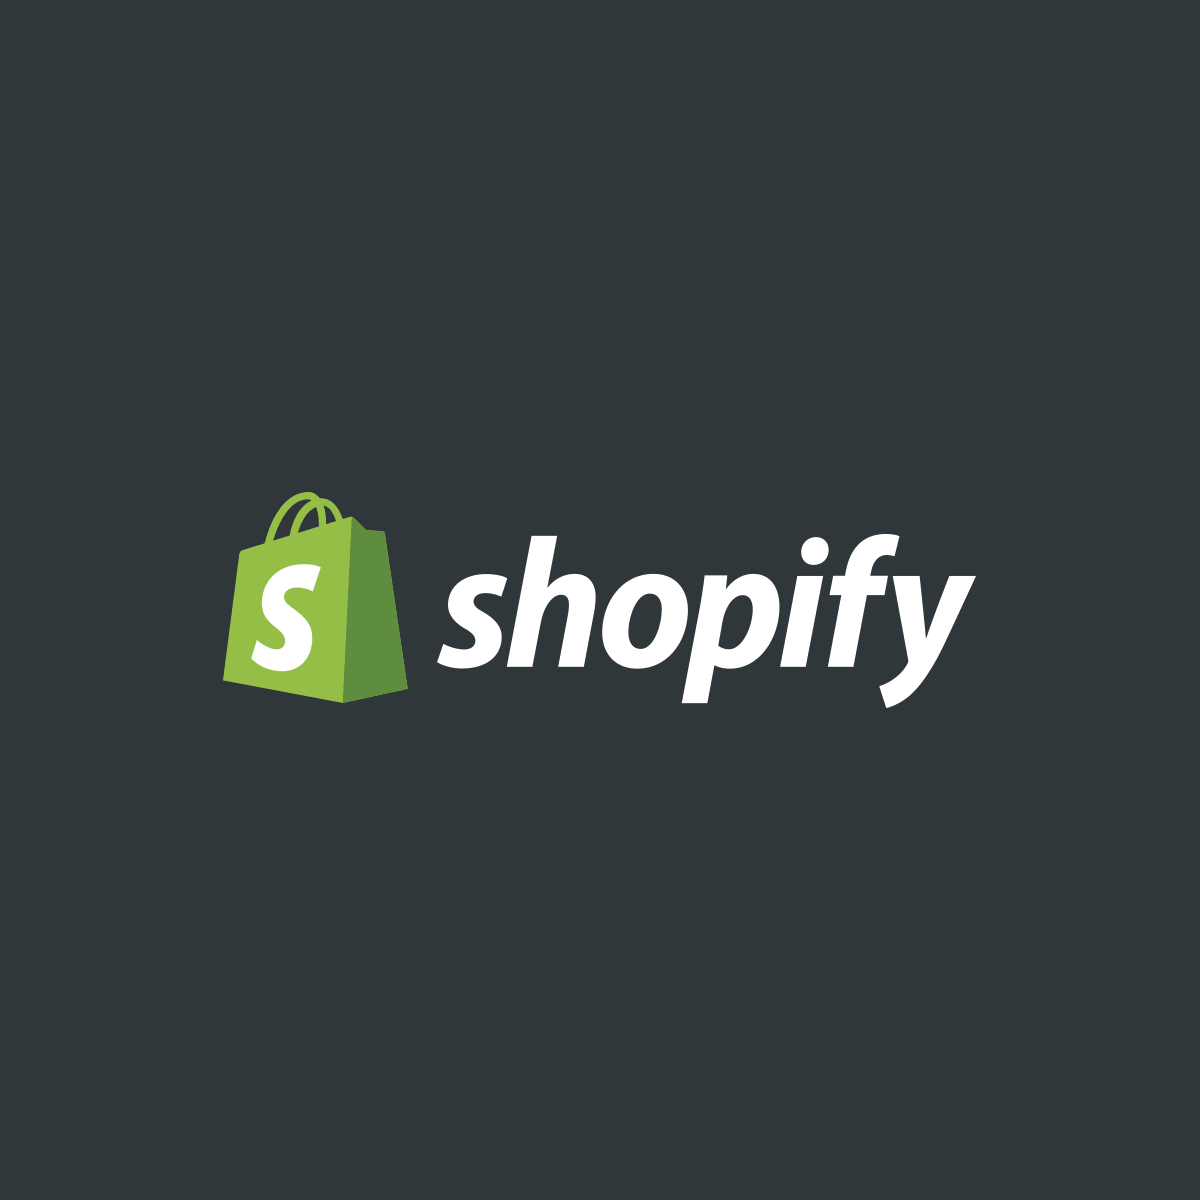 Mobile Buy - Build a custom storefront - Shopify Help Center